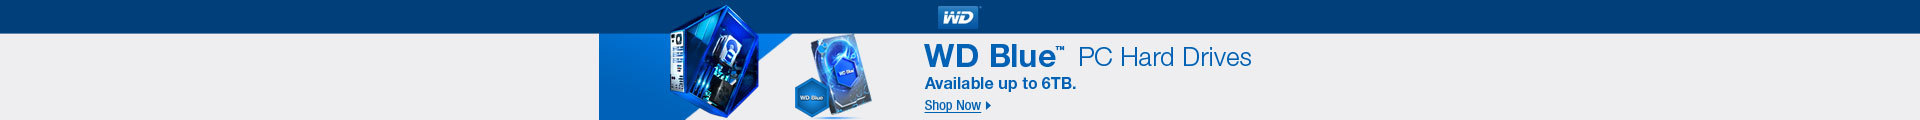 WD Blue PC Hard Drives